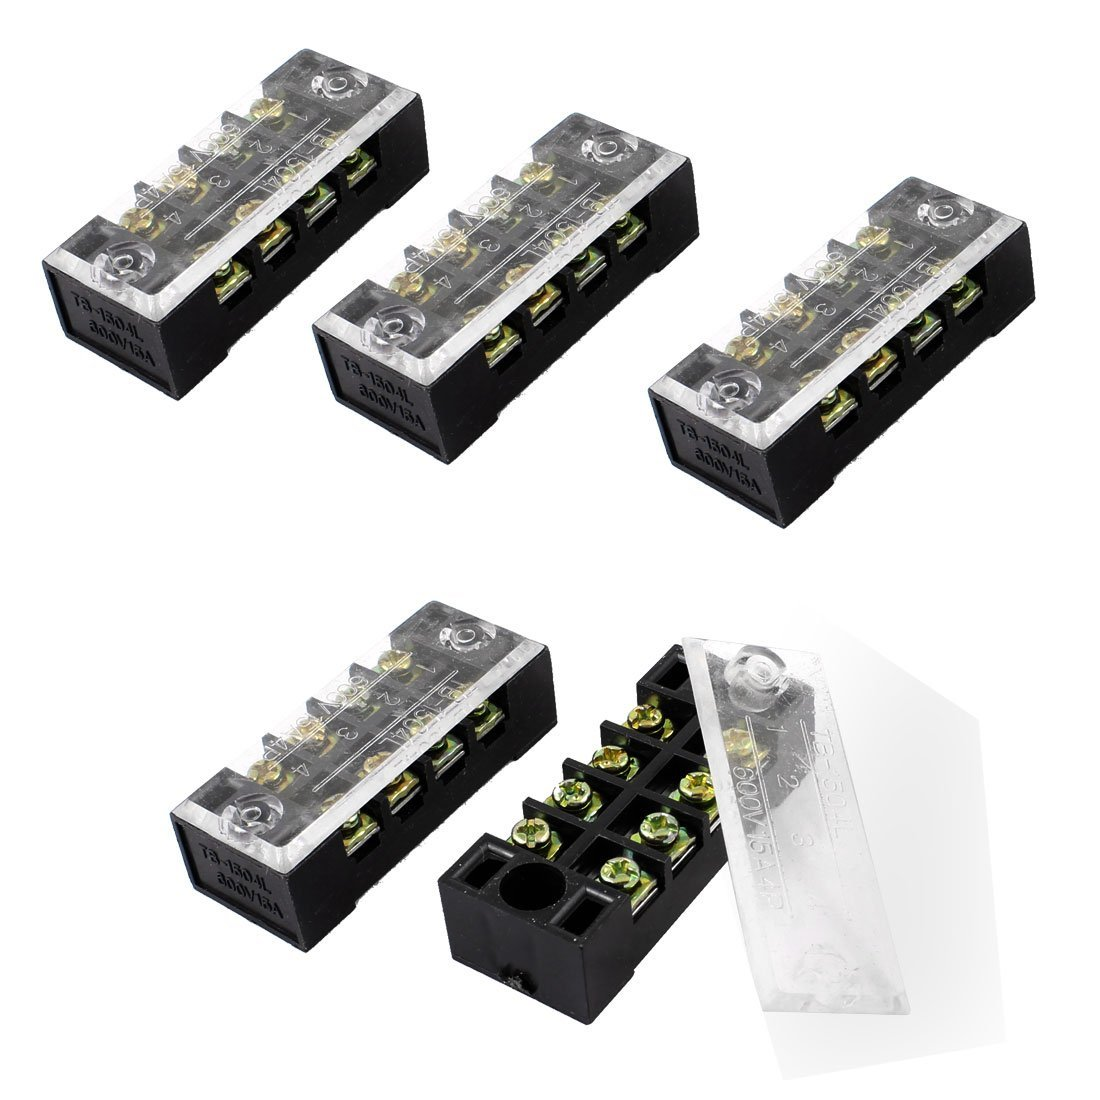 SODIAL(R) 5 Pcs Dual Row 4 Position Covered Screw Terminal Block Strip 600V 15A 035700